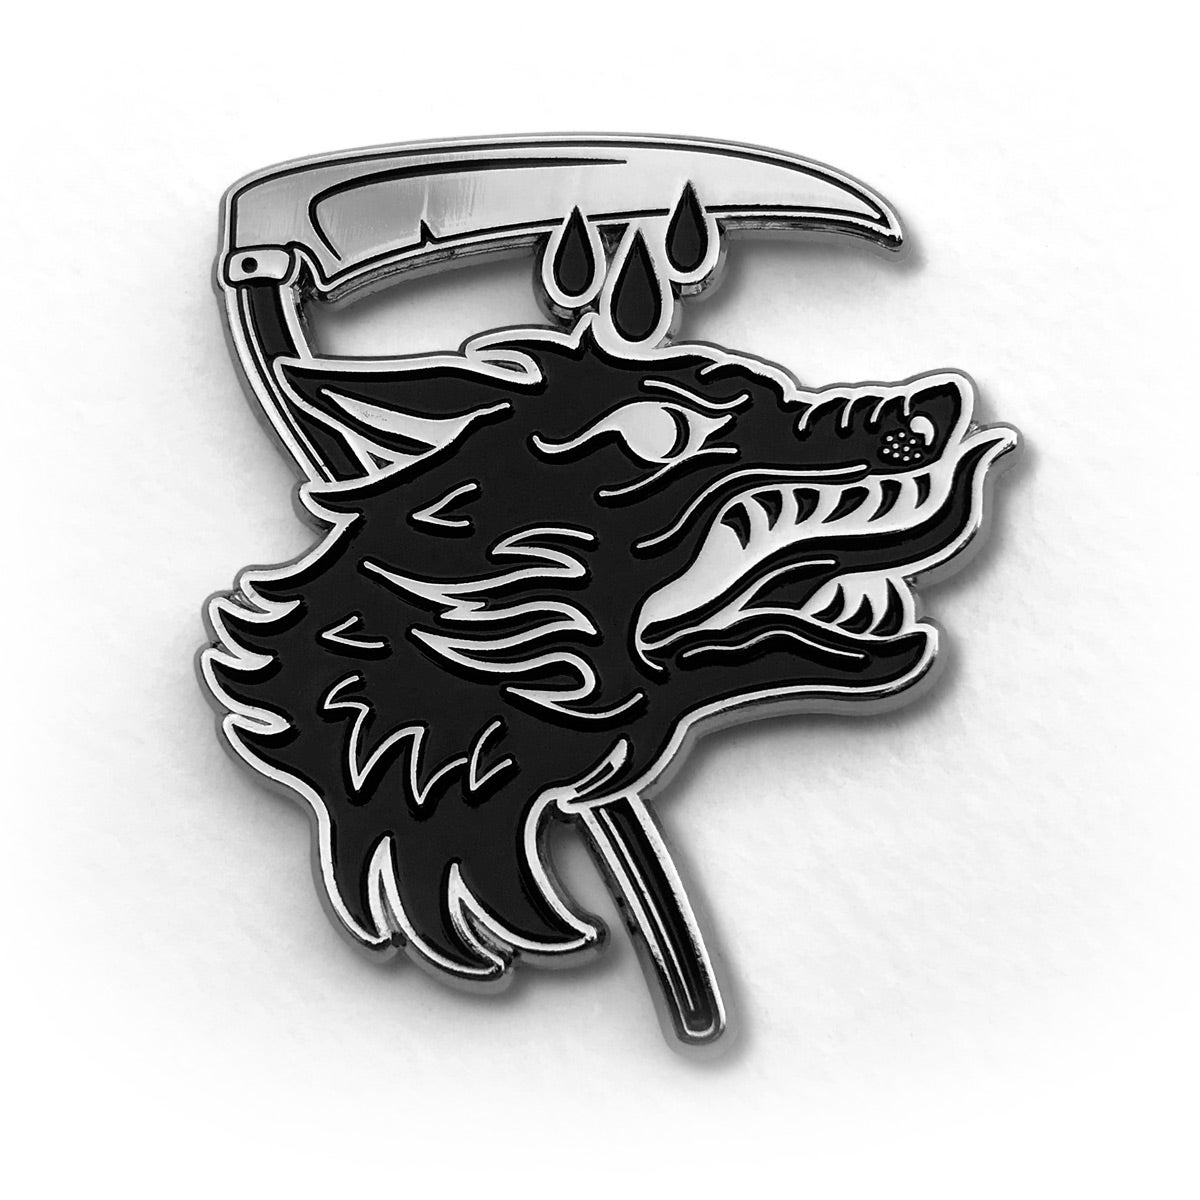 Image of Nachzehrer Patrol Pin II (Moonless Hunt)